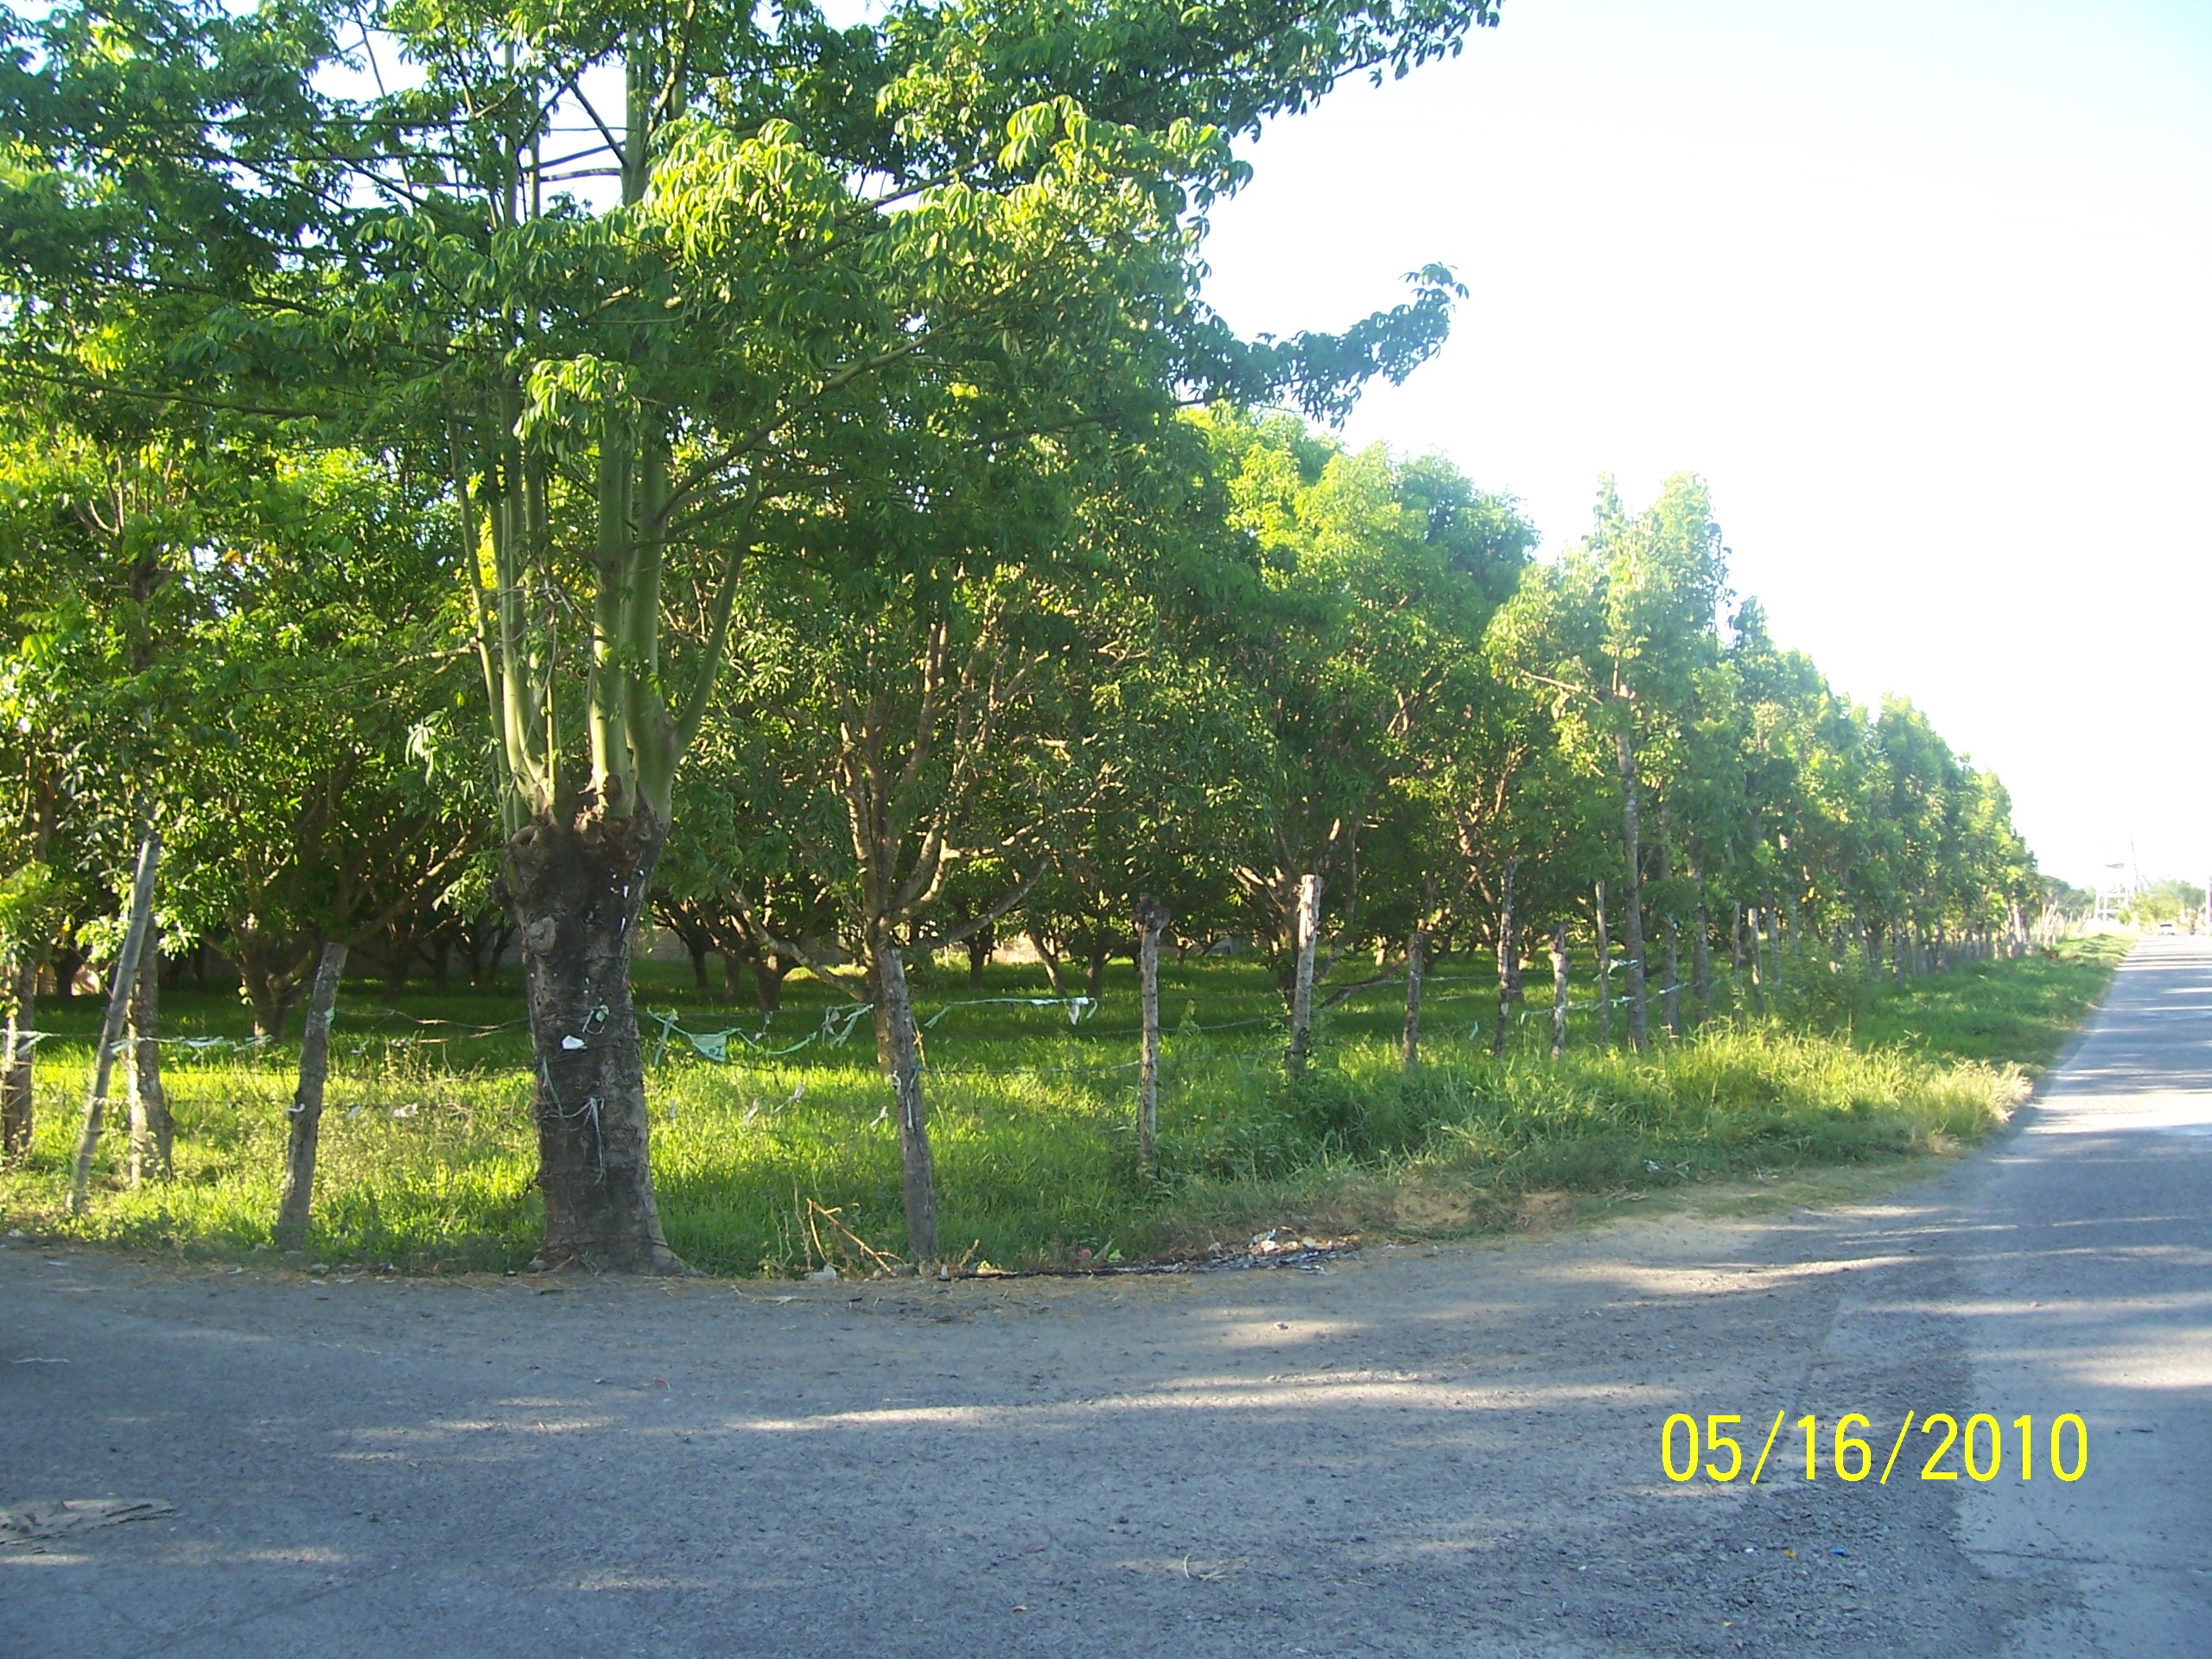 Residential lot with fruit bearing mango trees